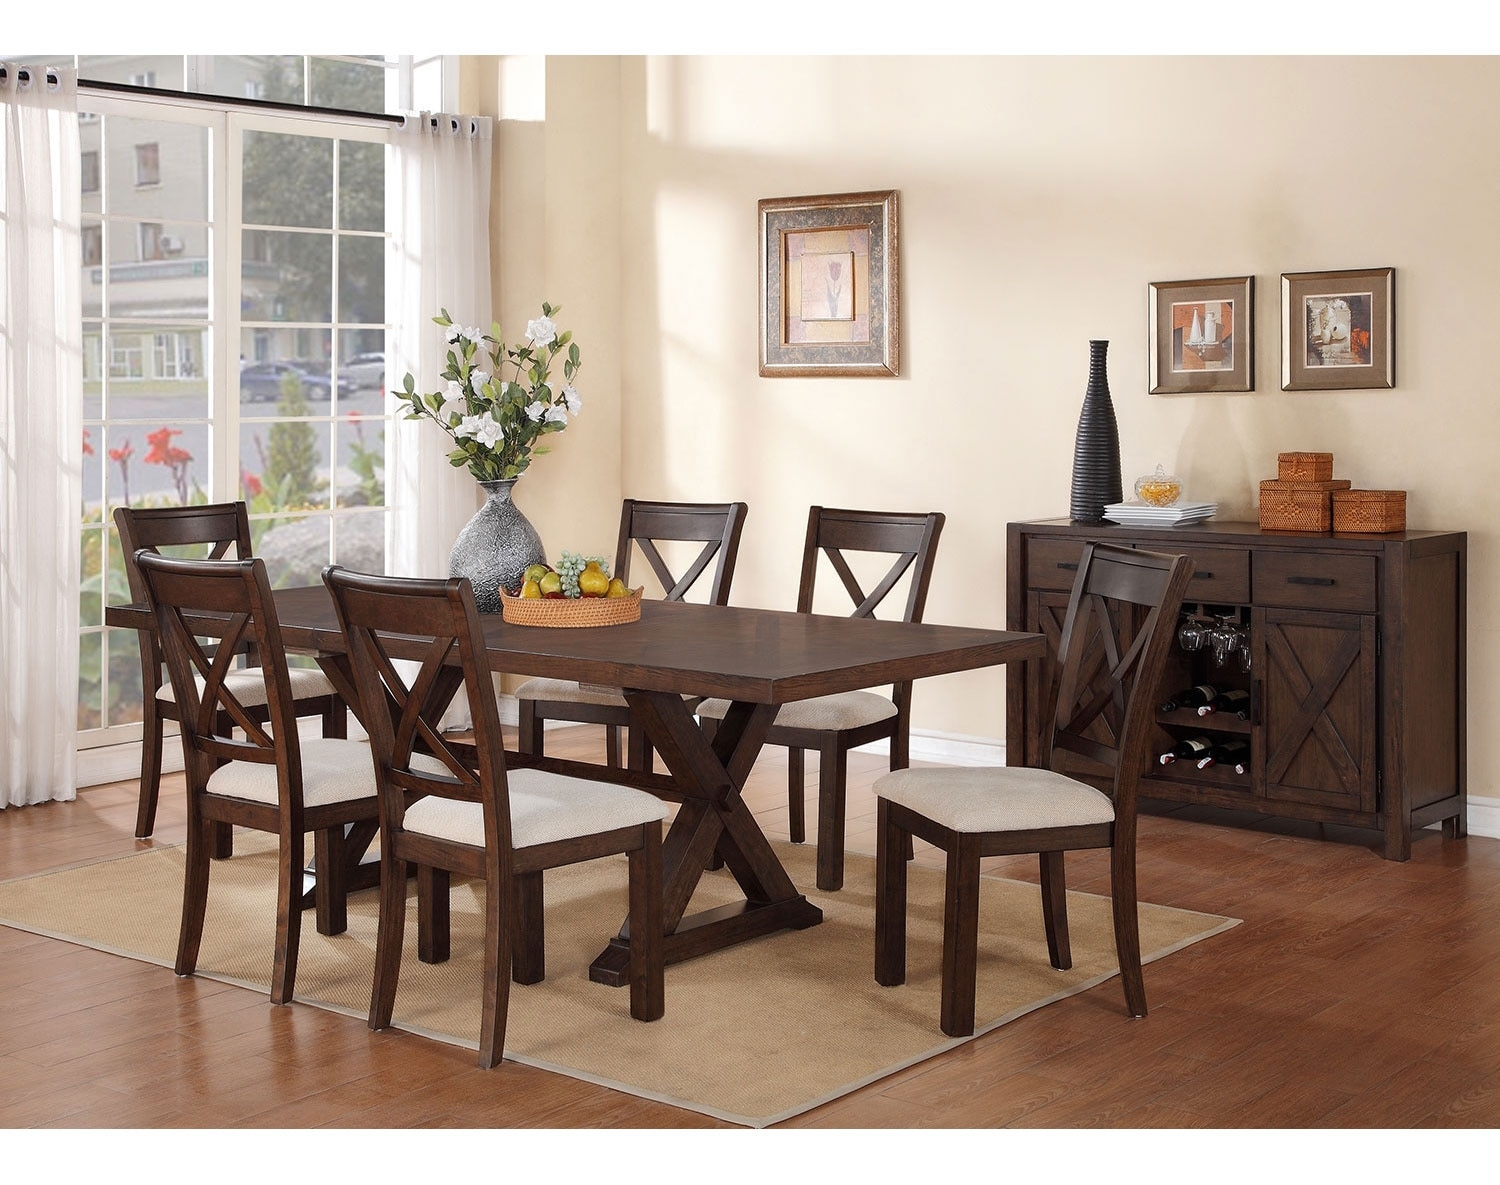 Claira 7 piece dining room set rustic brown leon 39 s for Dining room sets